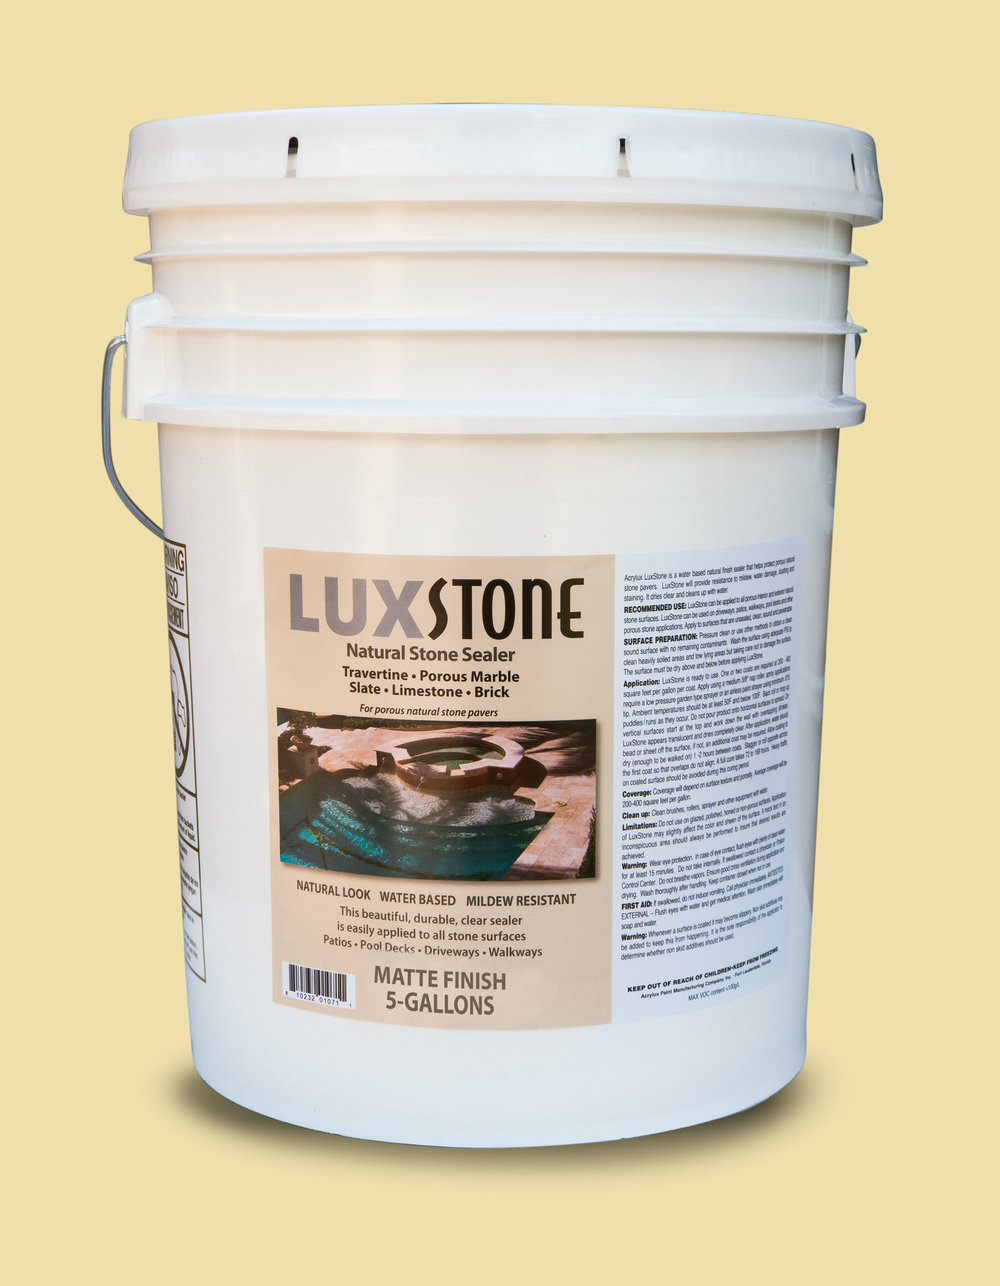 Luxstone Is A Matte Finish Water Based Clear Sealer For Porous Natural Stone  Pavers. Use On Travertine, Porous Marble, Slate, Limestone, Brick And  Concrete.